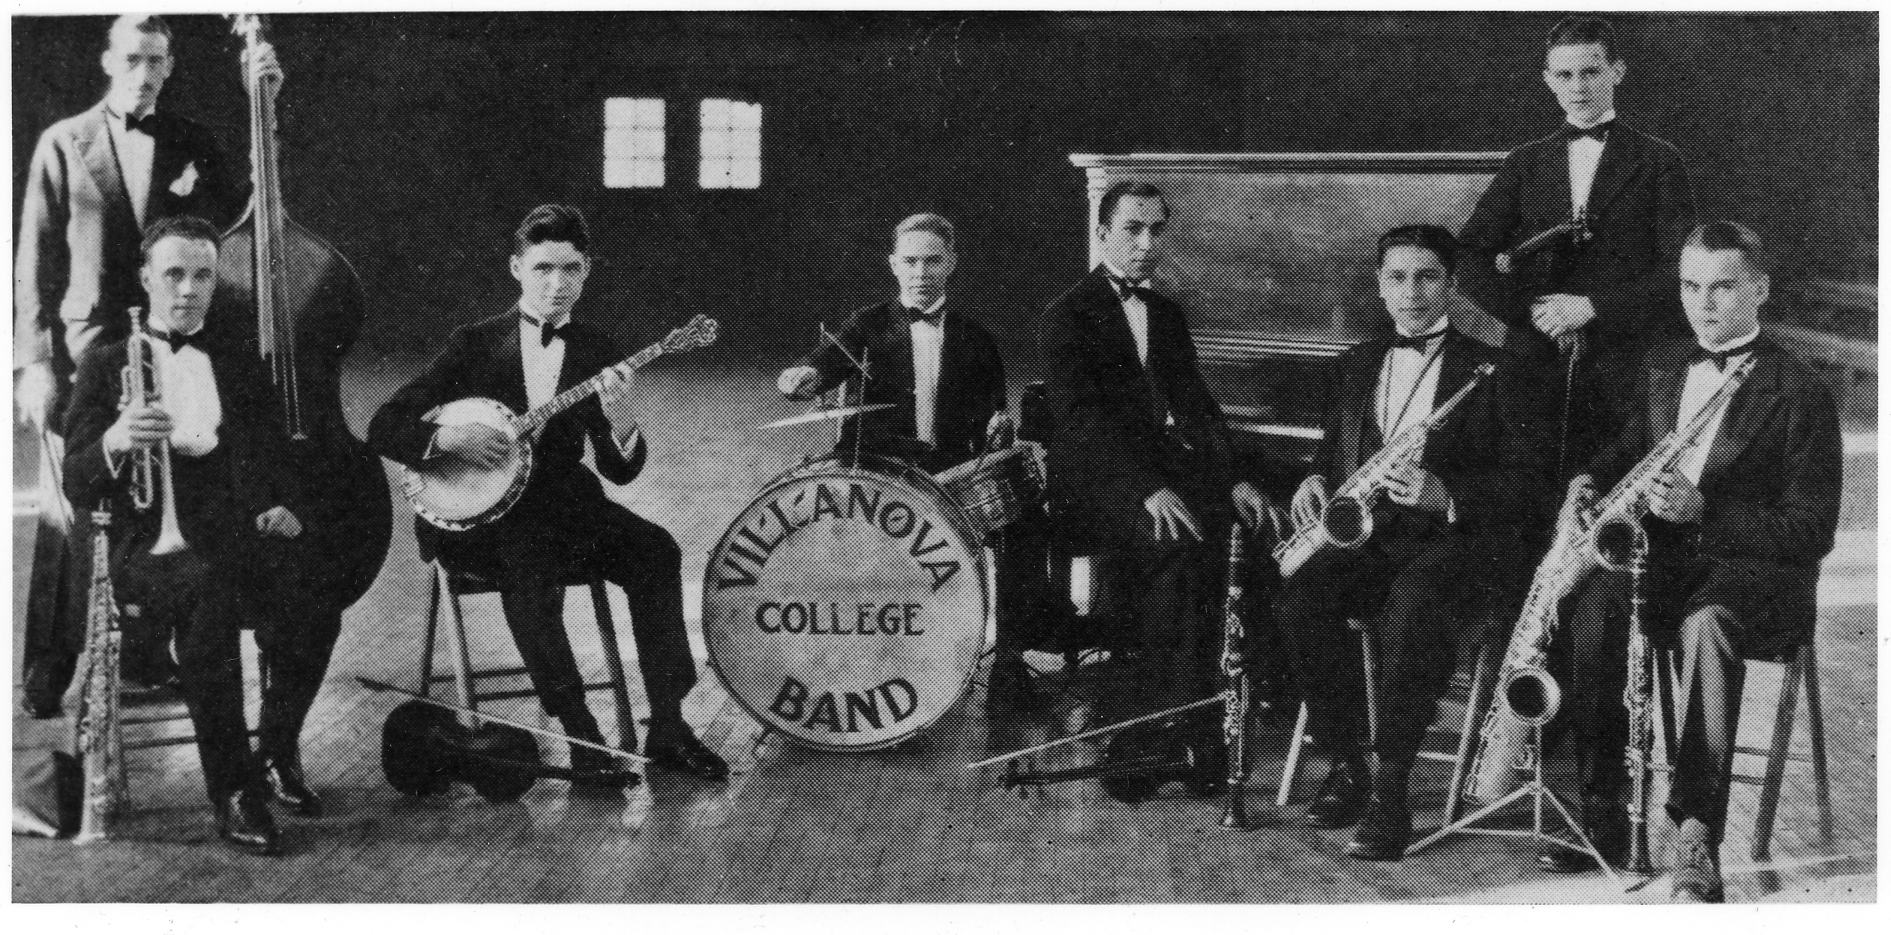 The 1927-college dance band